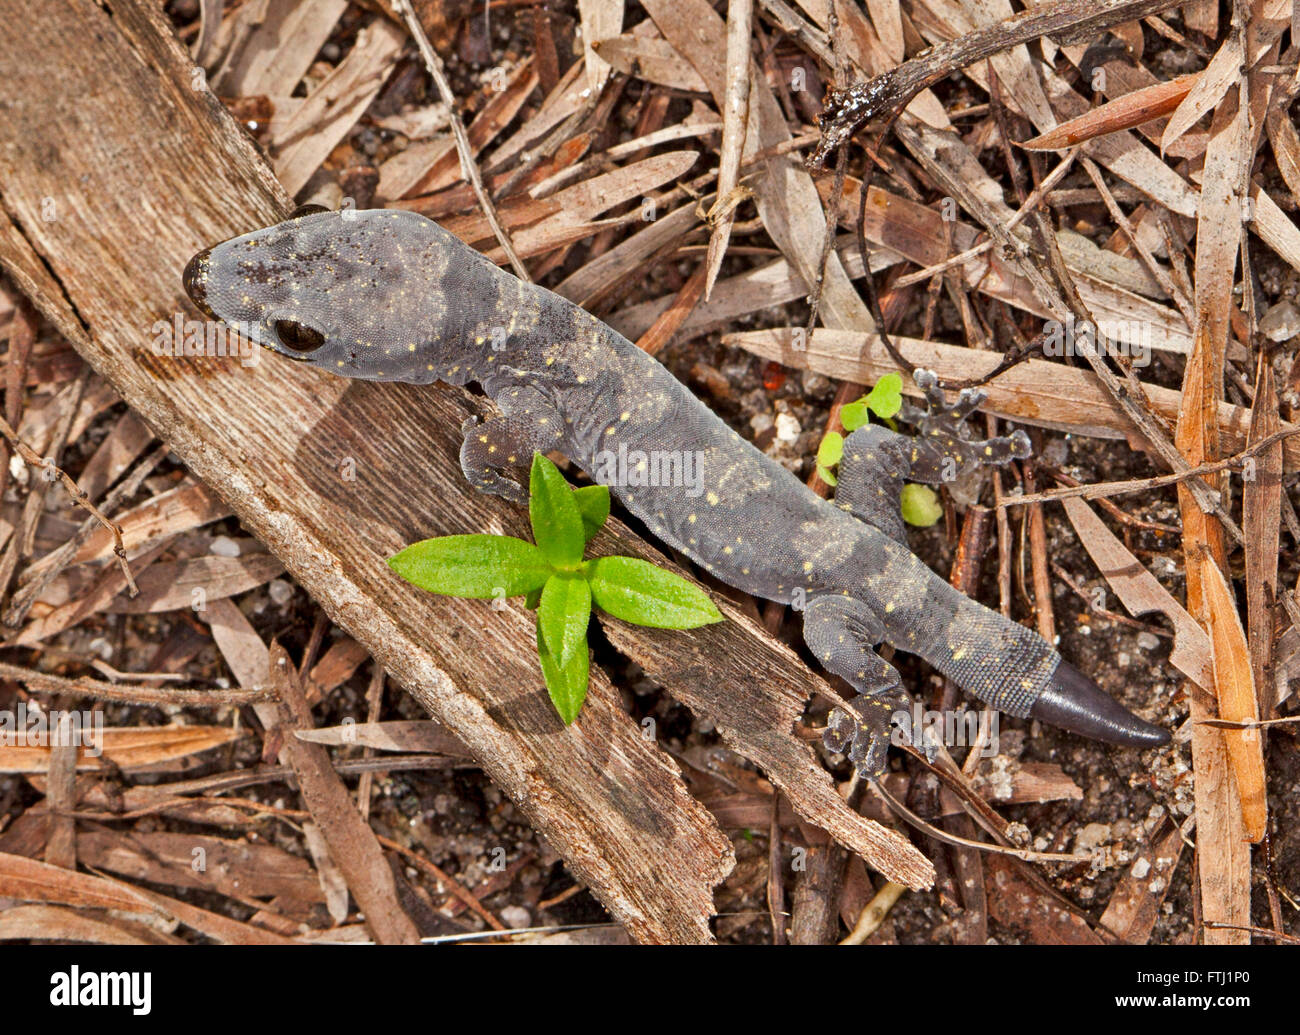 Beautiful young Australian gecko with grey patterned body & new tail regrowing after damage - among fallen leaves - Stock Image